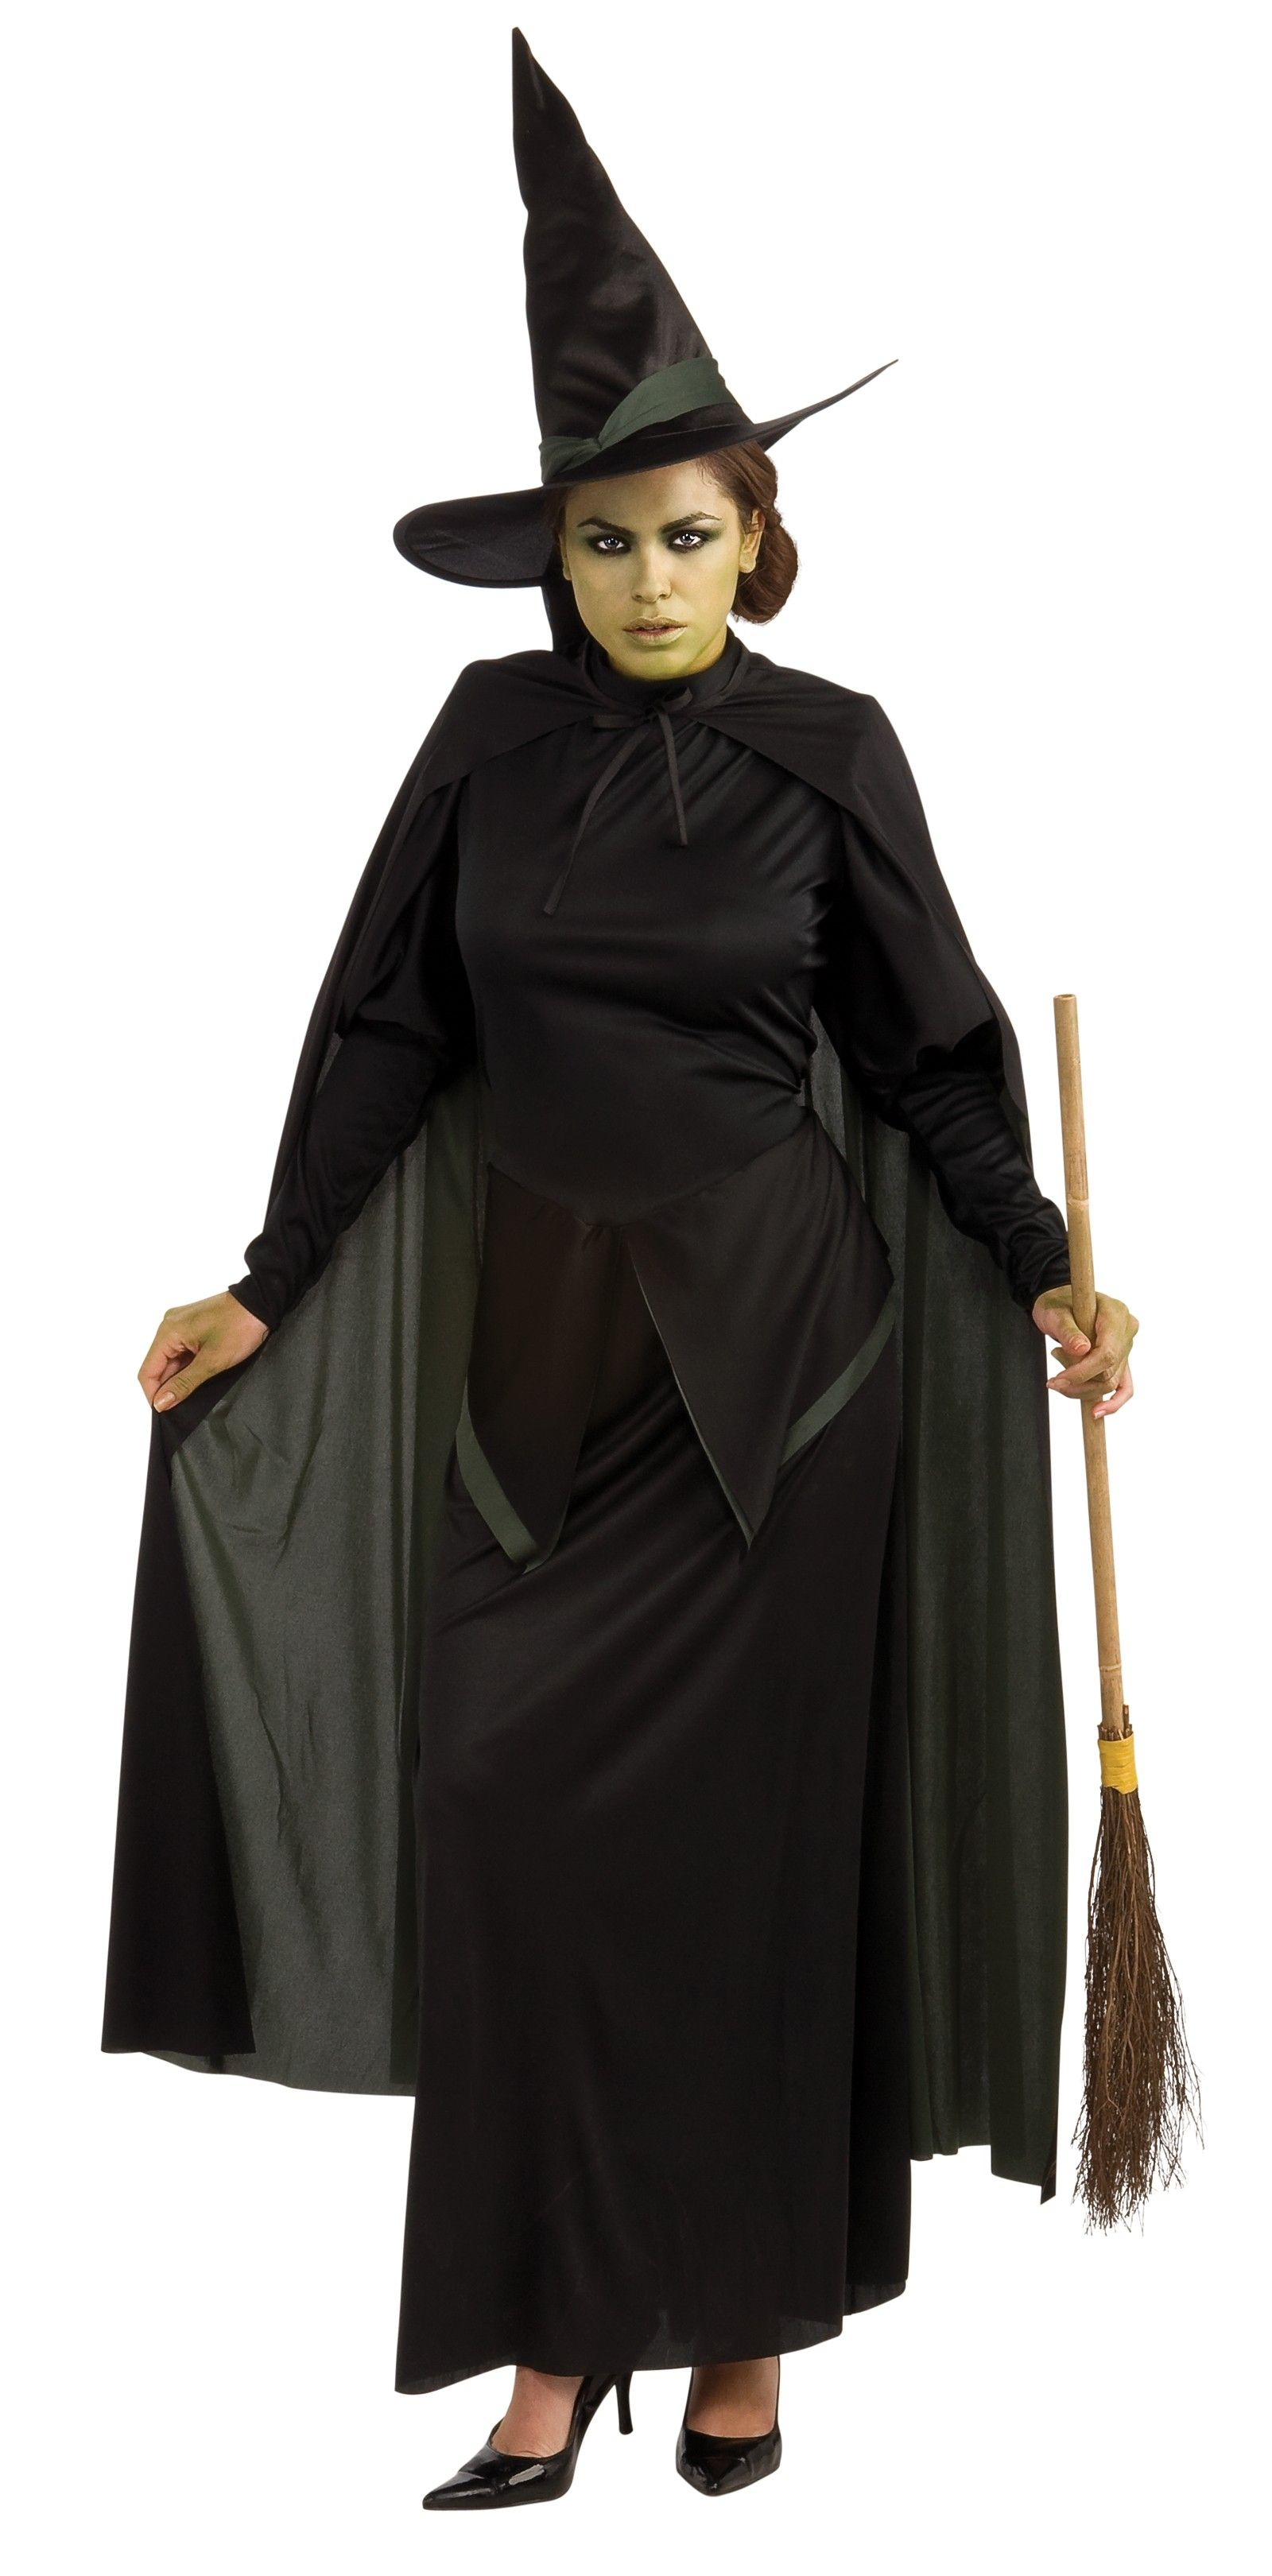 The Wizard of Oz Wicked Witch Adult Book Week Costume | Costumes.com.au  sc 1 st  Pinterest & The Wizard of Oz Wicked Witch Adult Womenu0027s Costume | Book week ...